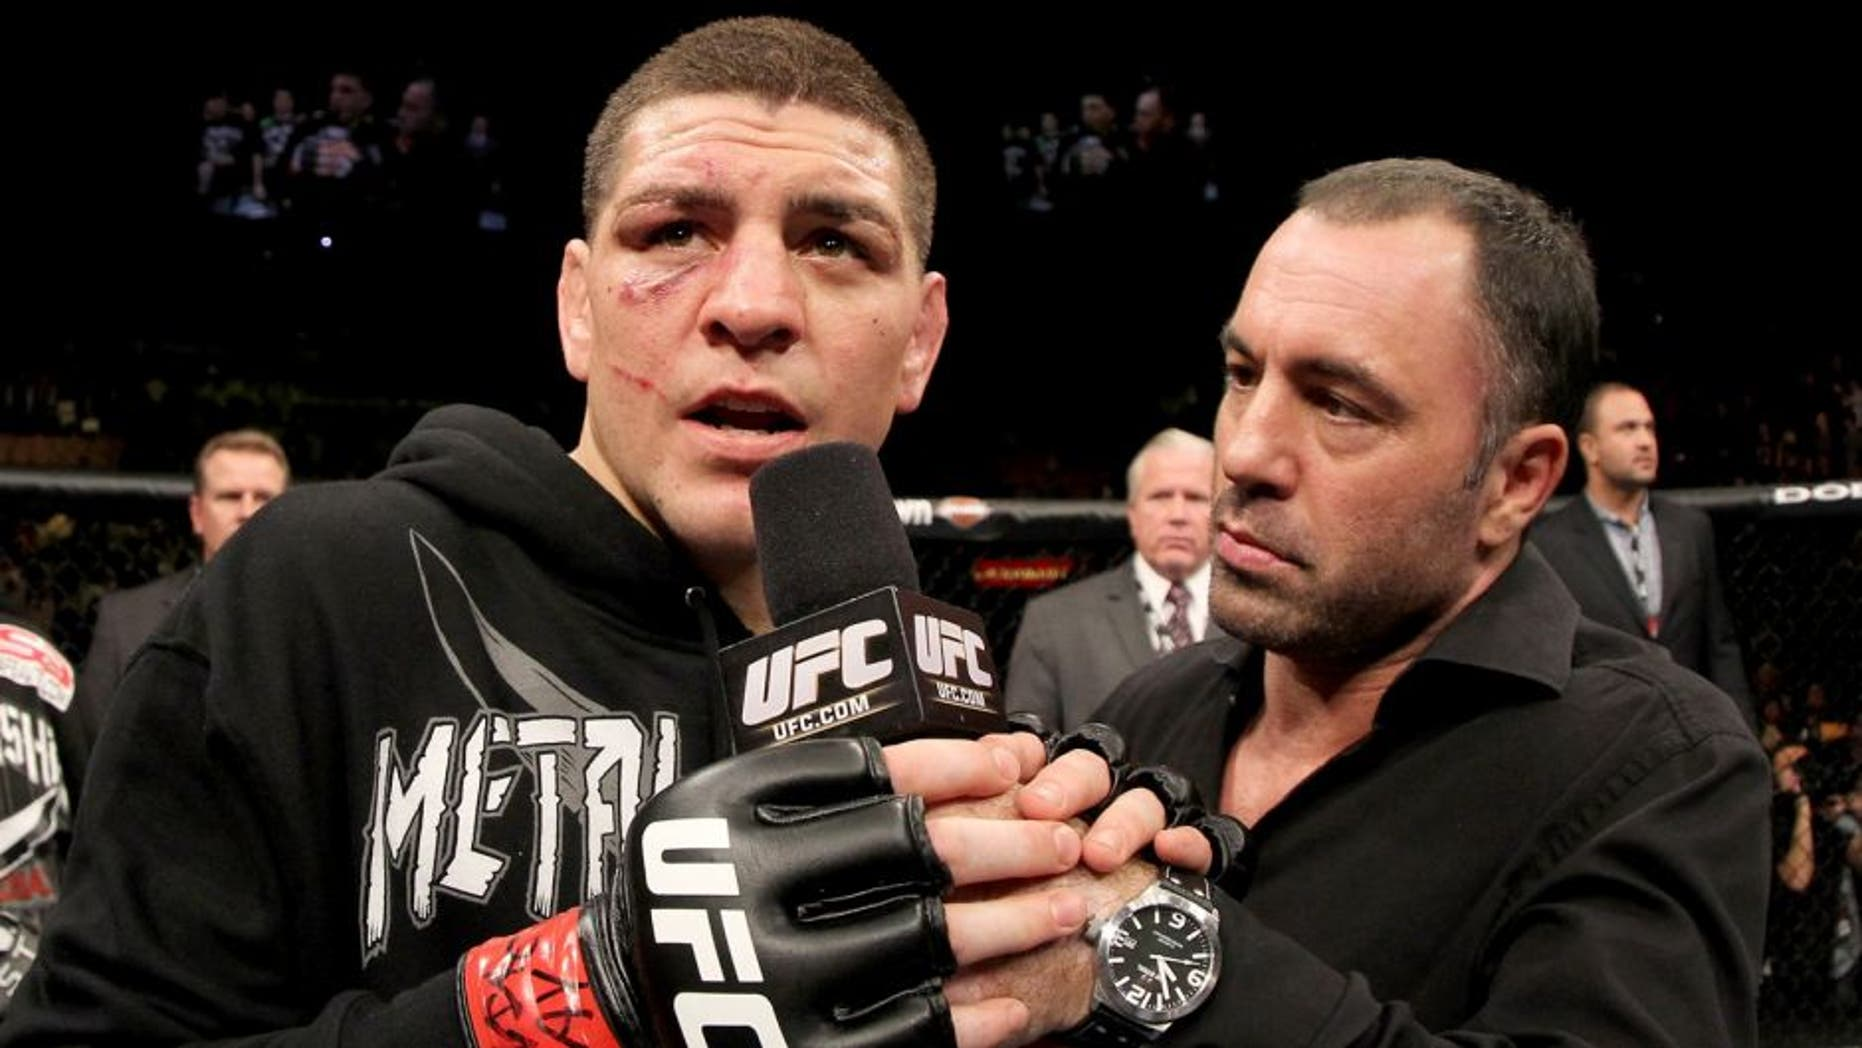 LAS VEGAS, NV - FEBRUARY 04: Nick Diaz (L) is interviewed by Joe Rogan after his victory over Nick Diaz during the UFC 143 event at Mandalay Bay Events Center on February 4, 2012 in Las Vegas, Nevada. (Photo by Josh Hedges/Zuffa LLC/Zuffa LLC via Getty Images)